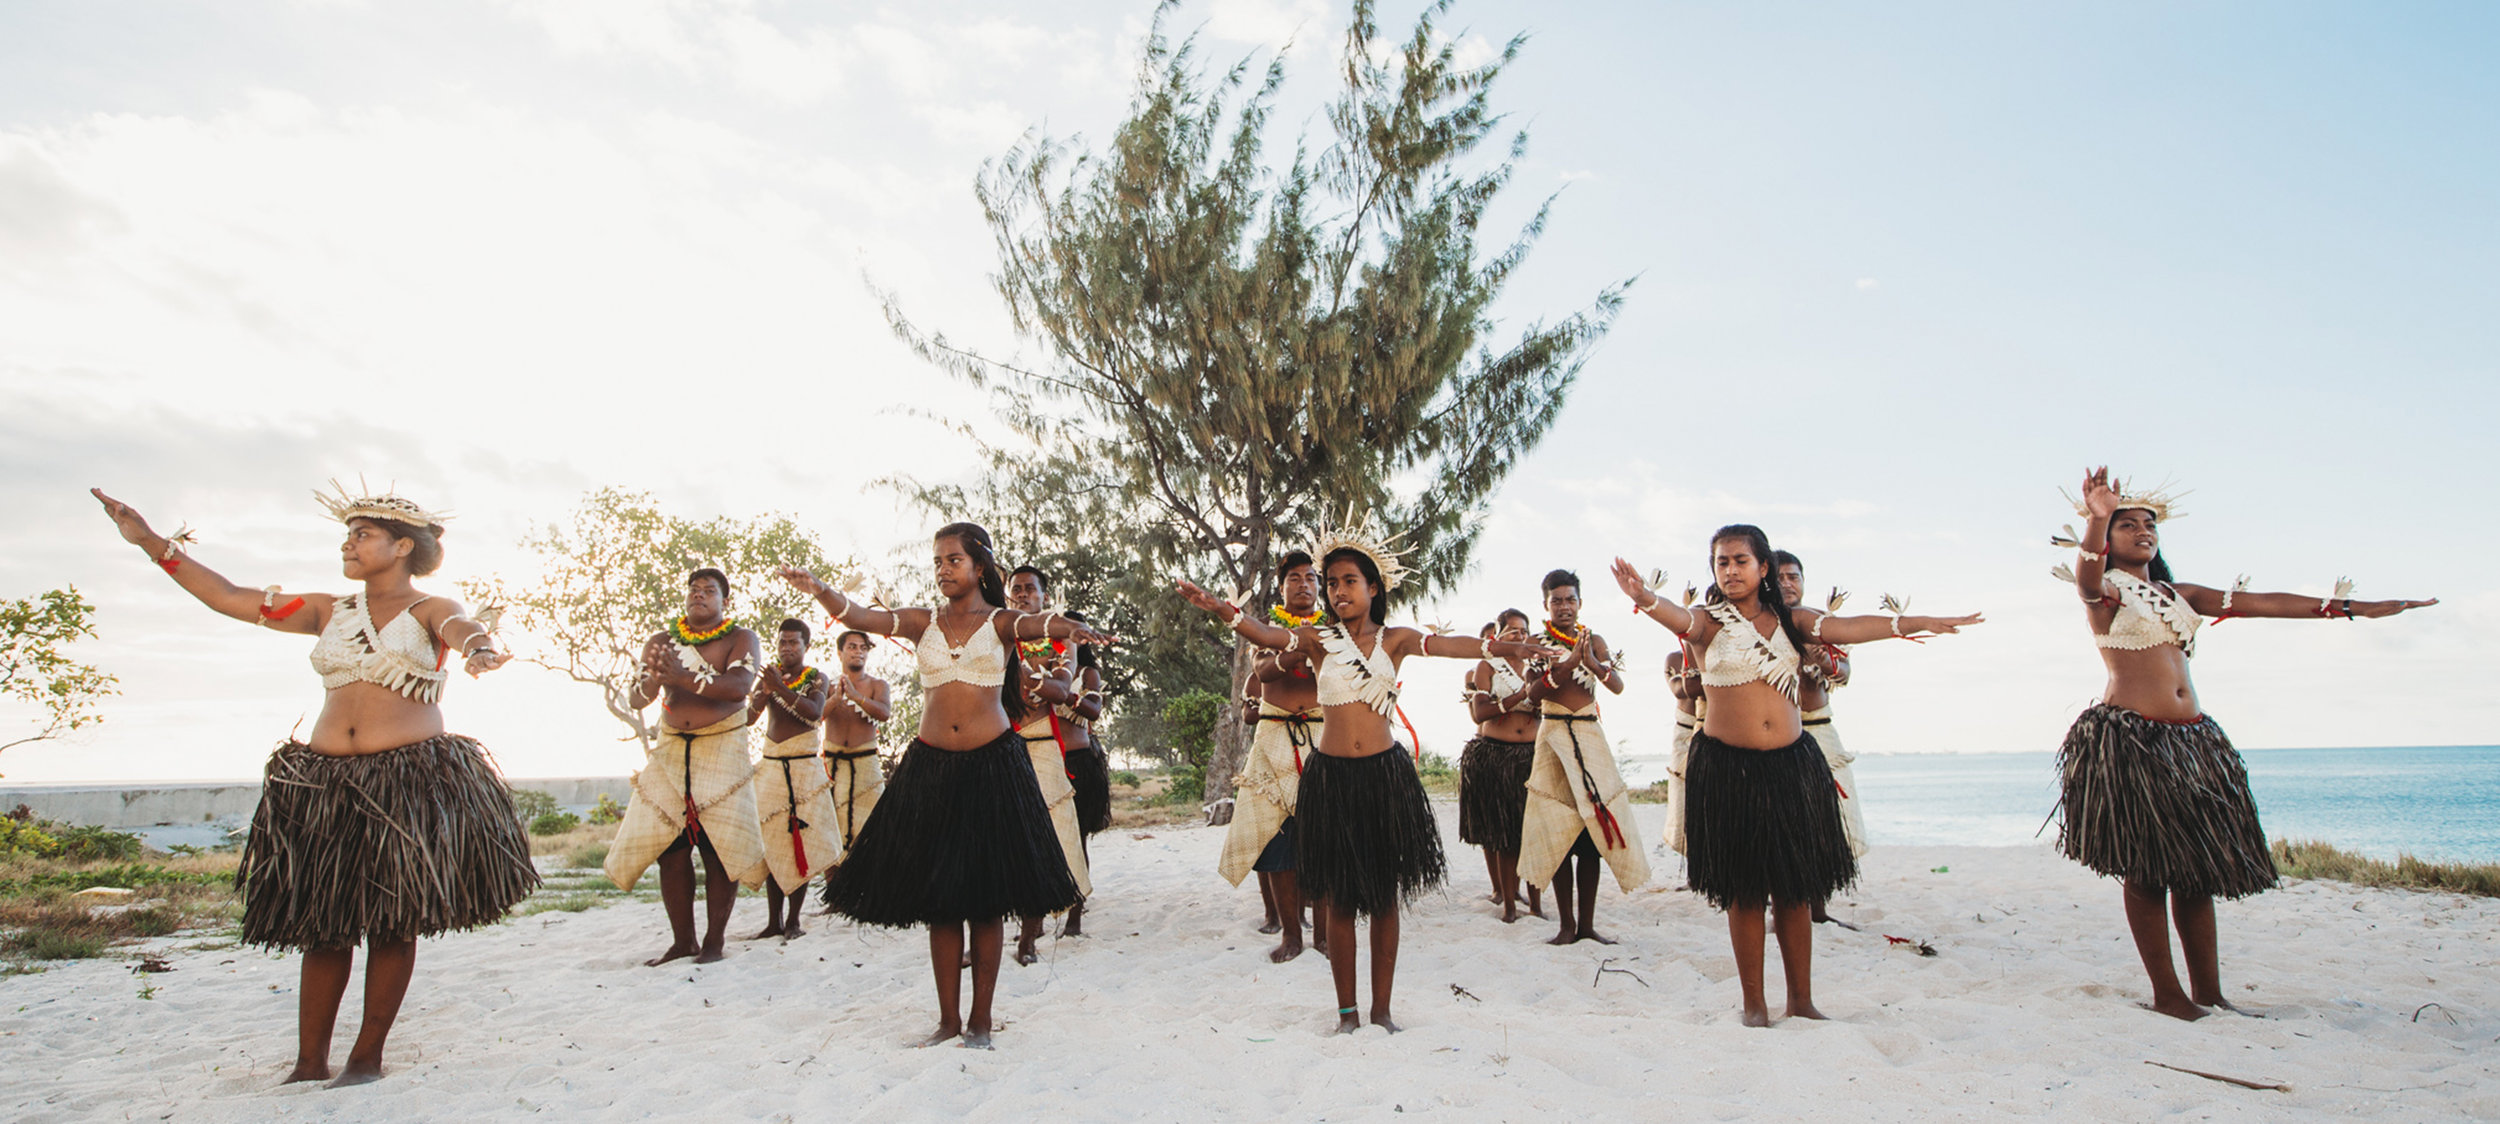 Weight Of the World - Kiribati | The Climate Reality Project